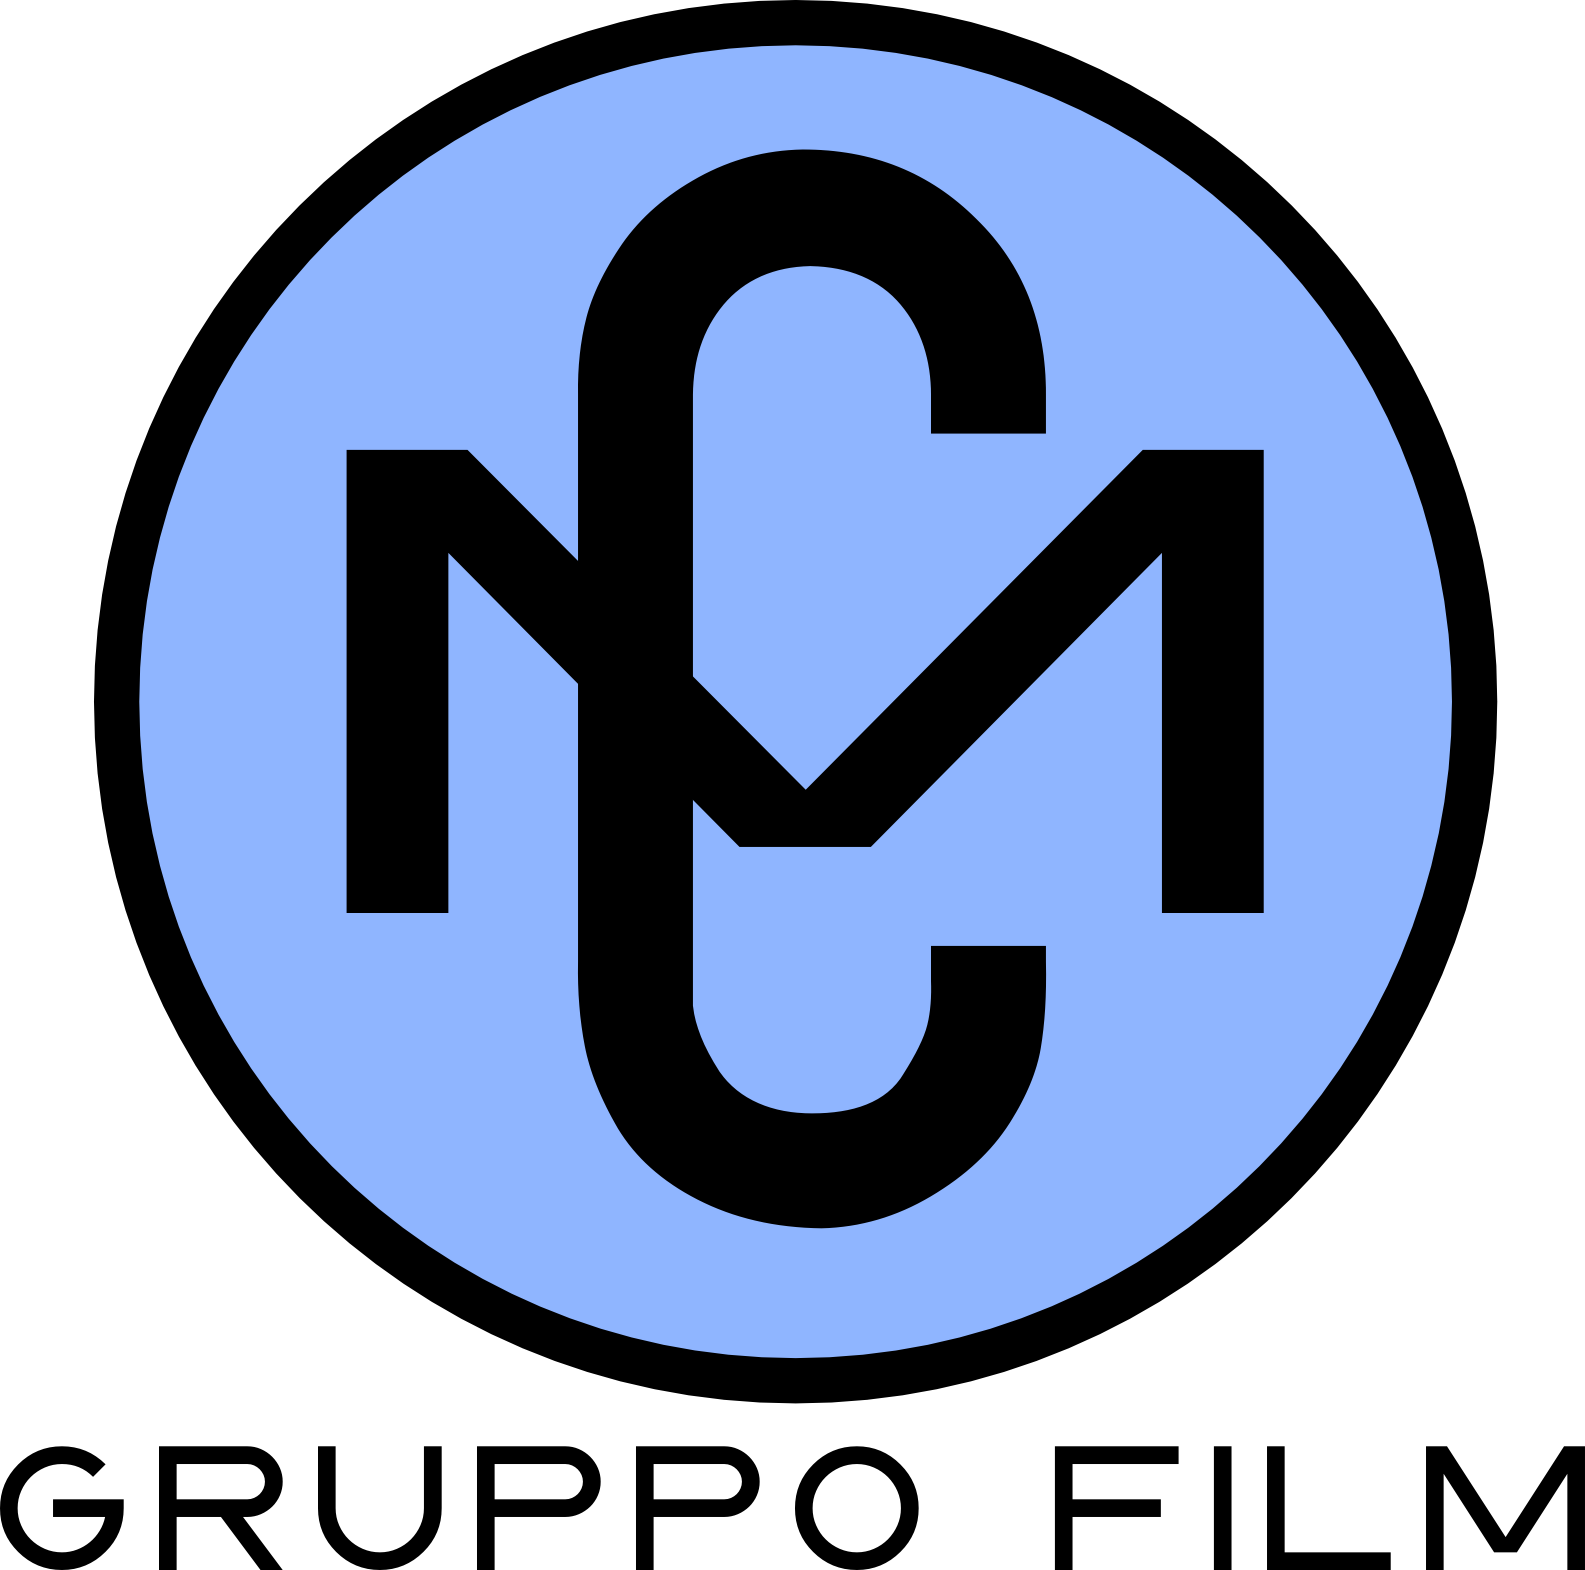 Calascetti Film Group